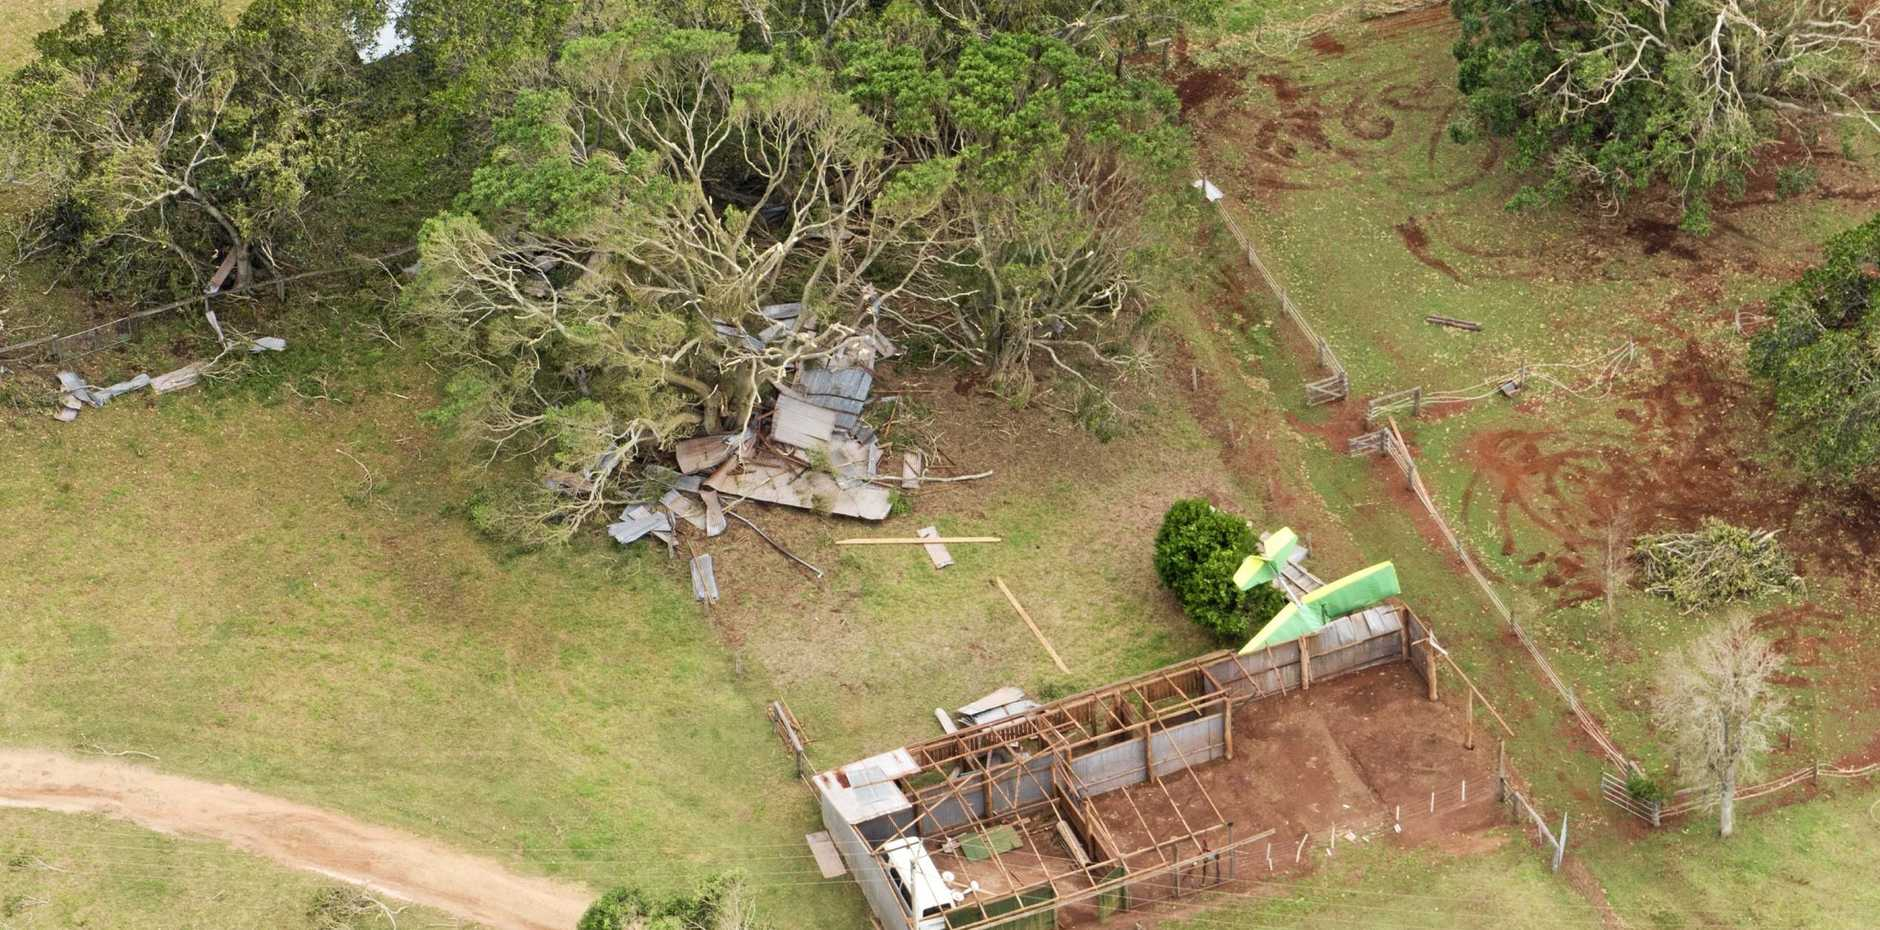 BOXING DAY BLITZ: The storm ripped an aircraft out of its hanger on a property near Kumbia.